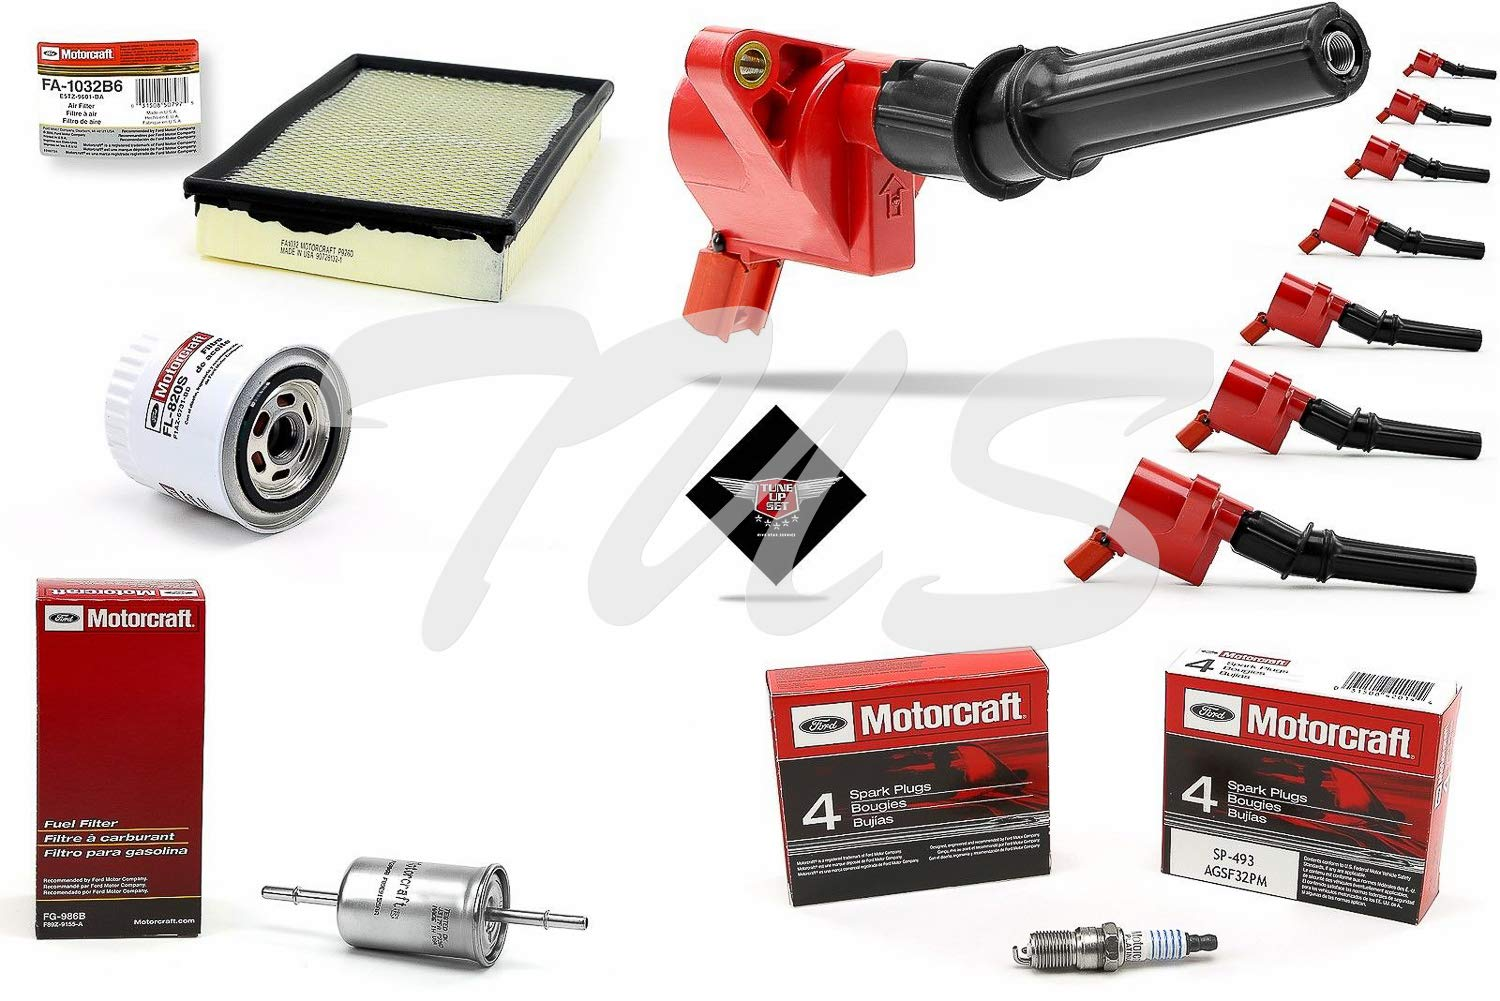 Tune Up Kit 2004 Mercury Grand Marquis 4.6L V8 High performance Ignition Coil DG508 Spark Plug SP493 FA1032 by Aftermarket High Performance Ignition Coil , Motorcraft Spark Plug & Filters